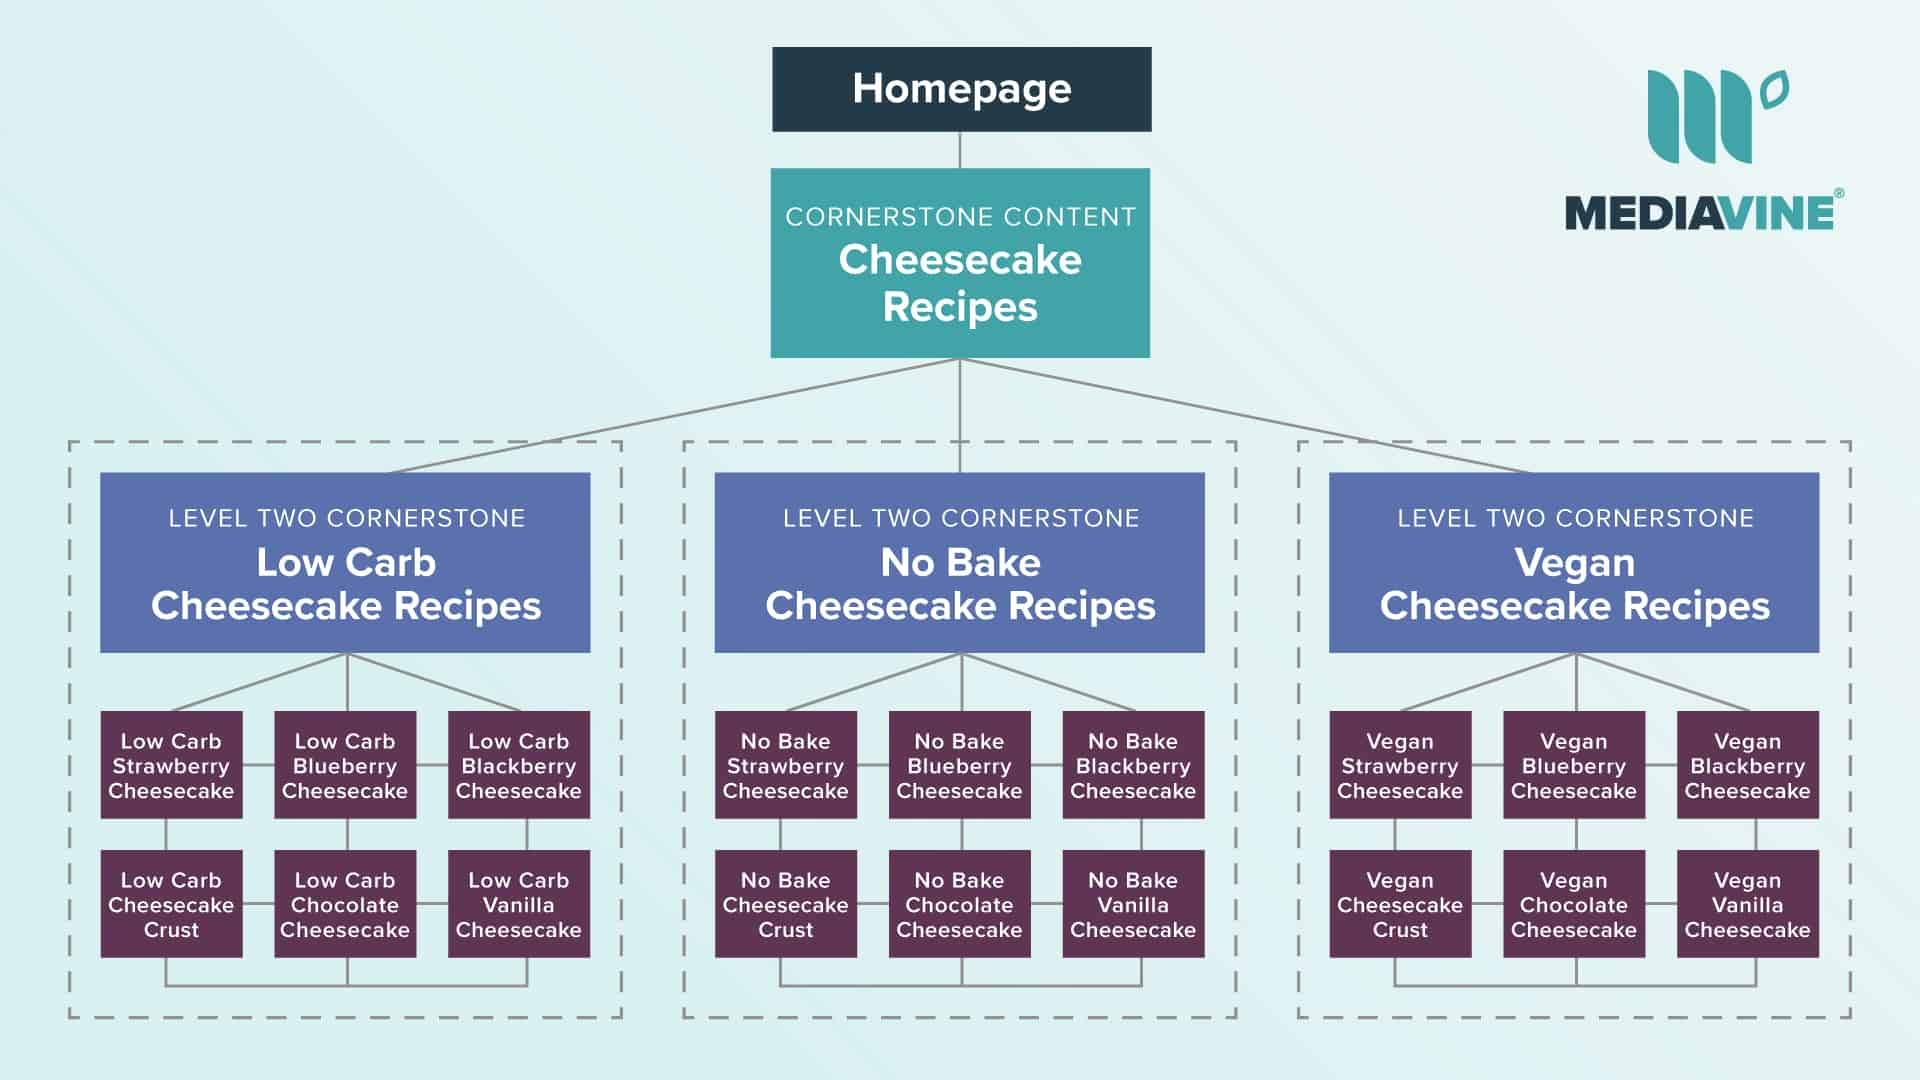 chart explaining cornerstone content with four layers of content, delving into a deeper level